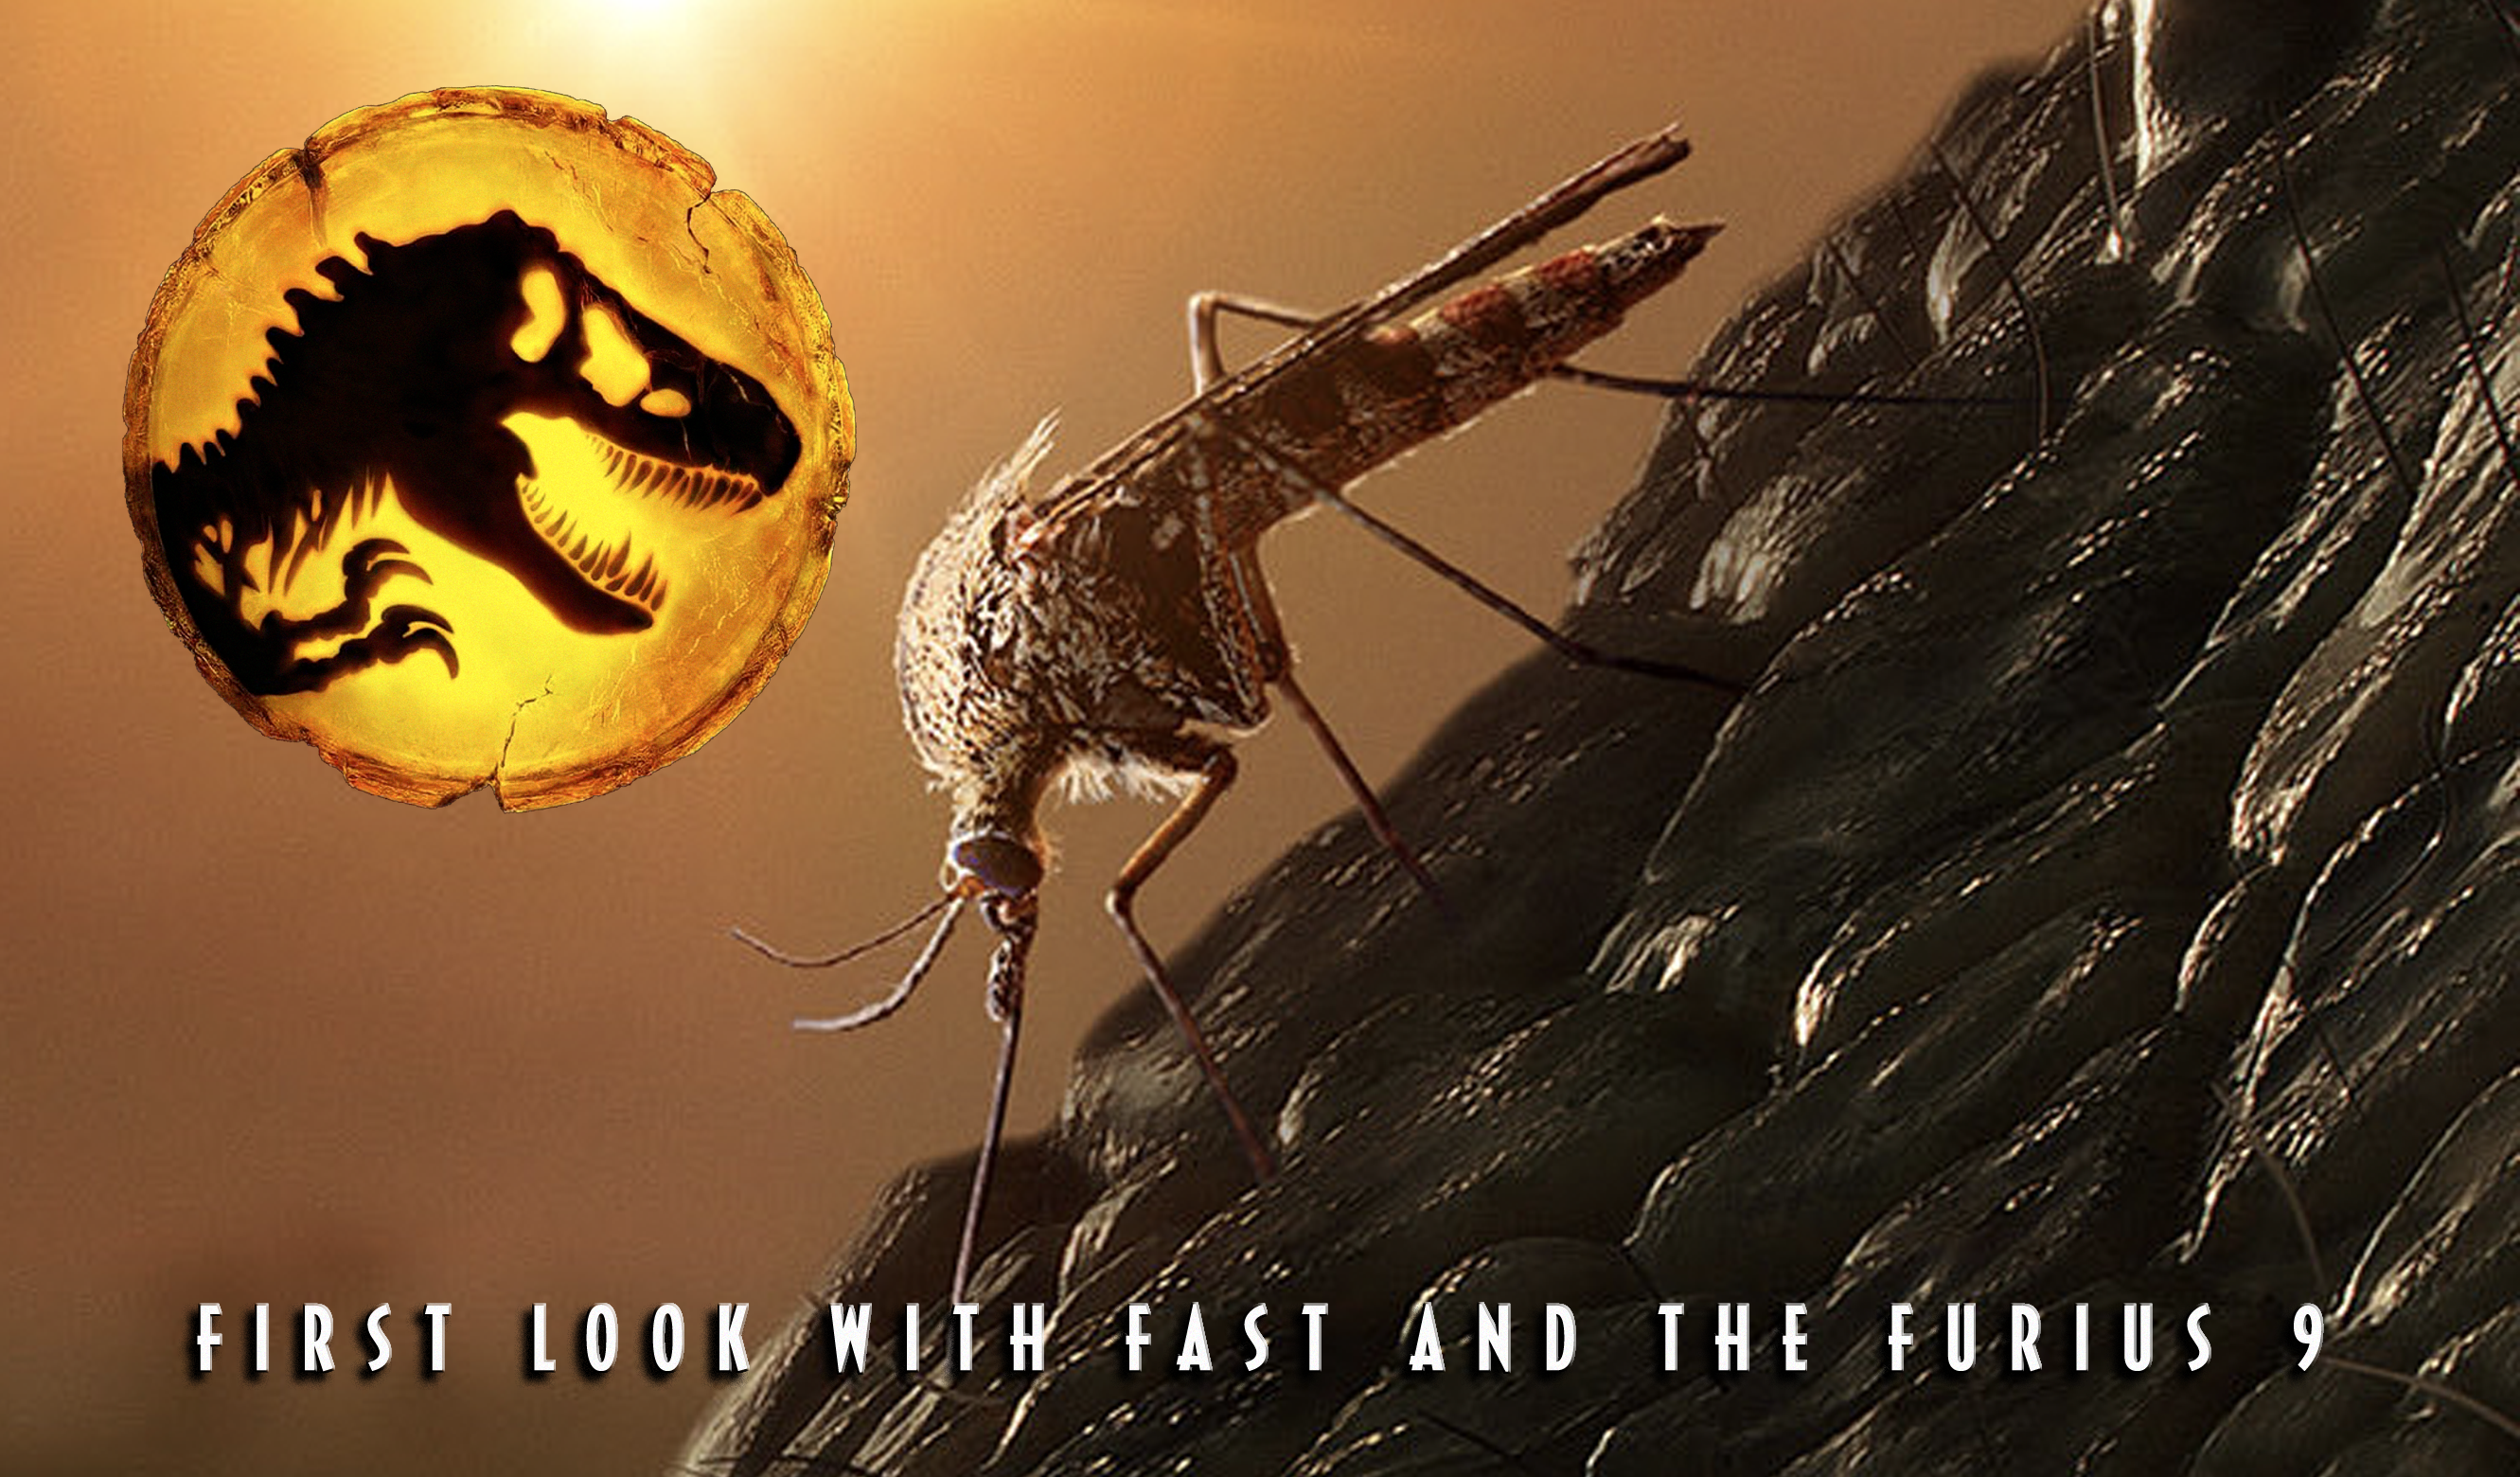 5-Minute Preview of 'Jurassic World Dominion' to Premiere with 'Fast & Furious 9 IMAX' Screenings!